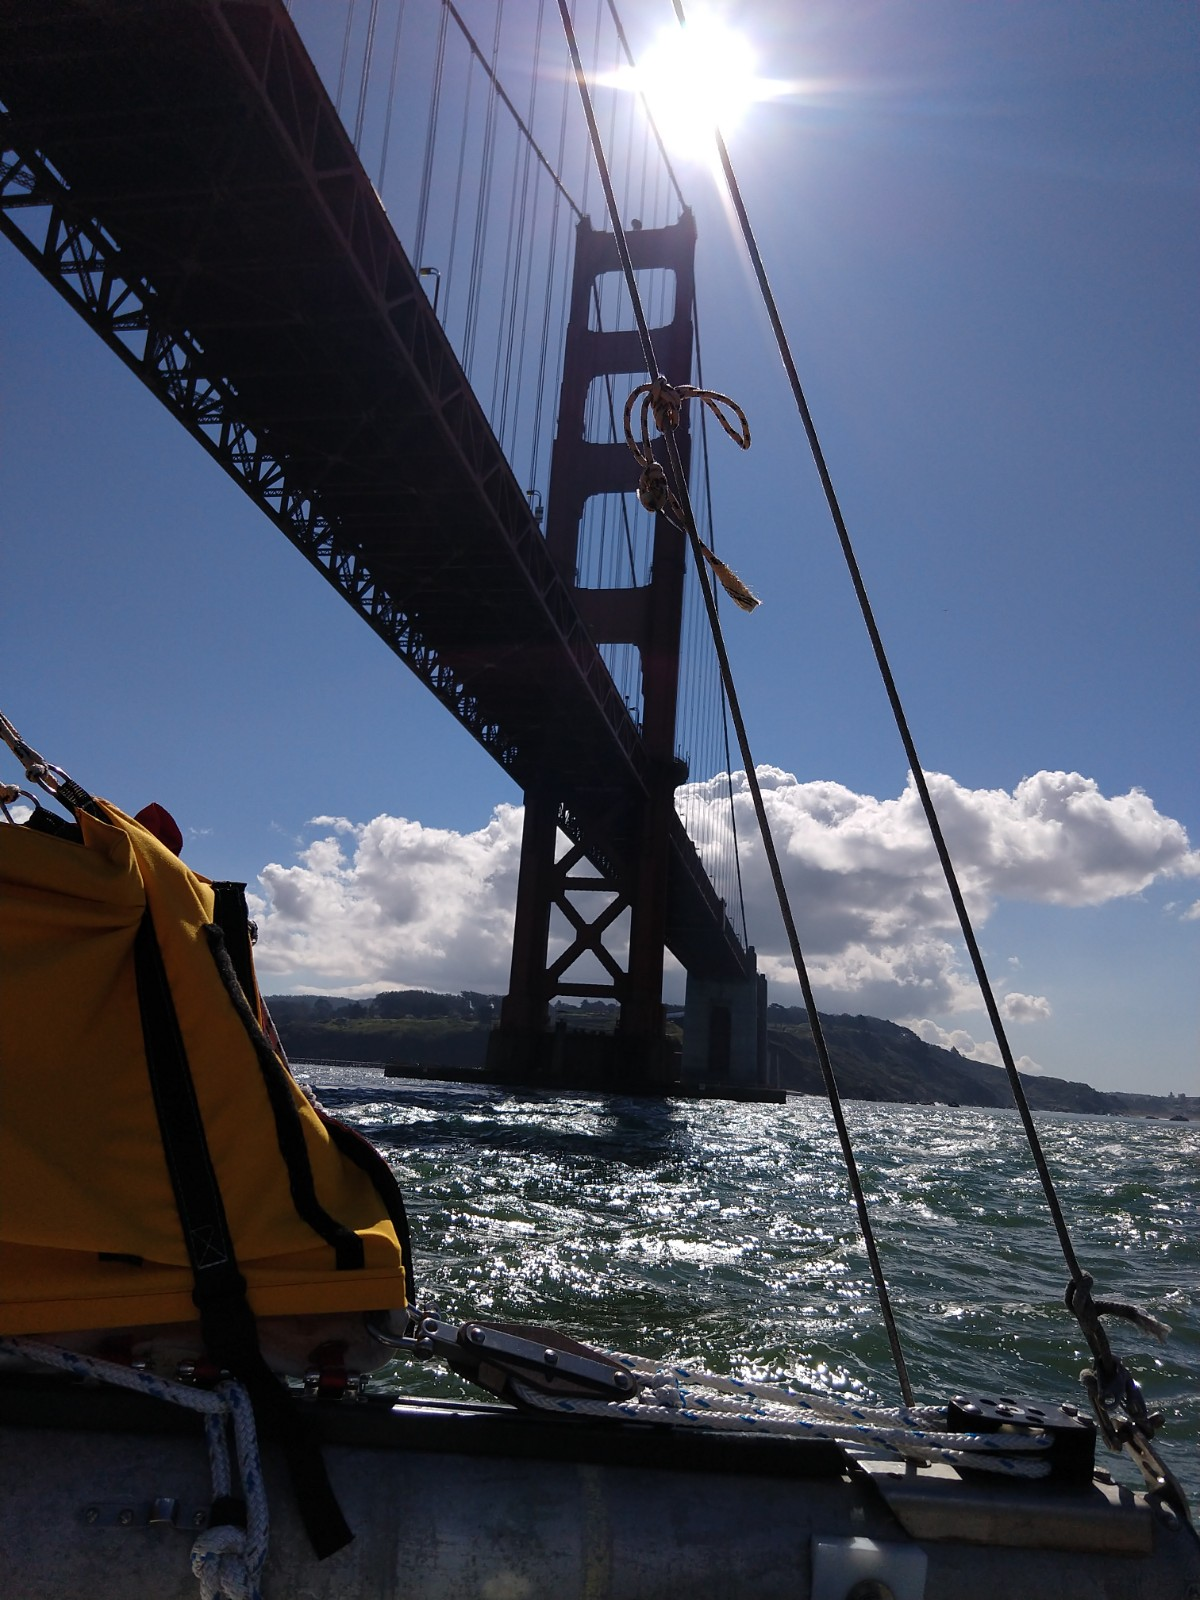 Golden Gate Bridge from the underside